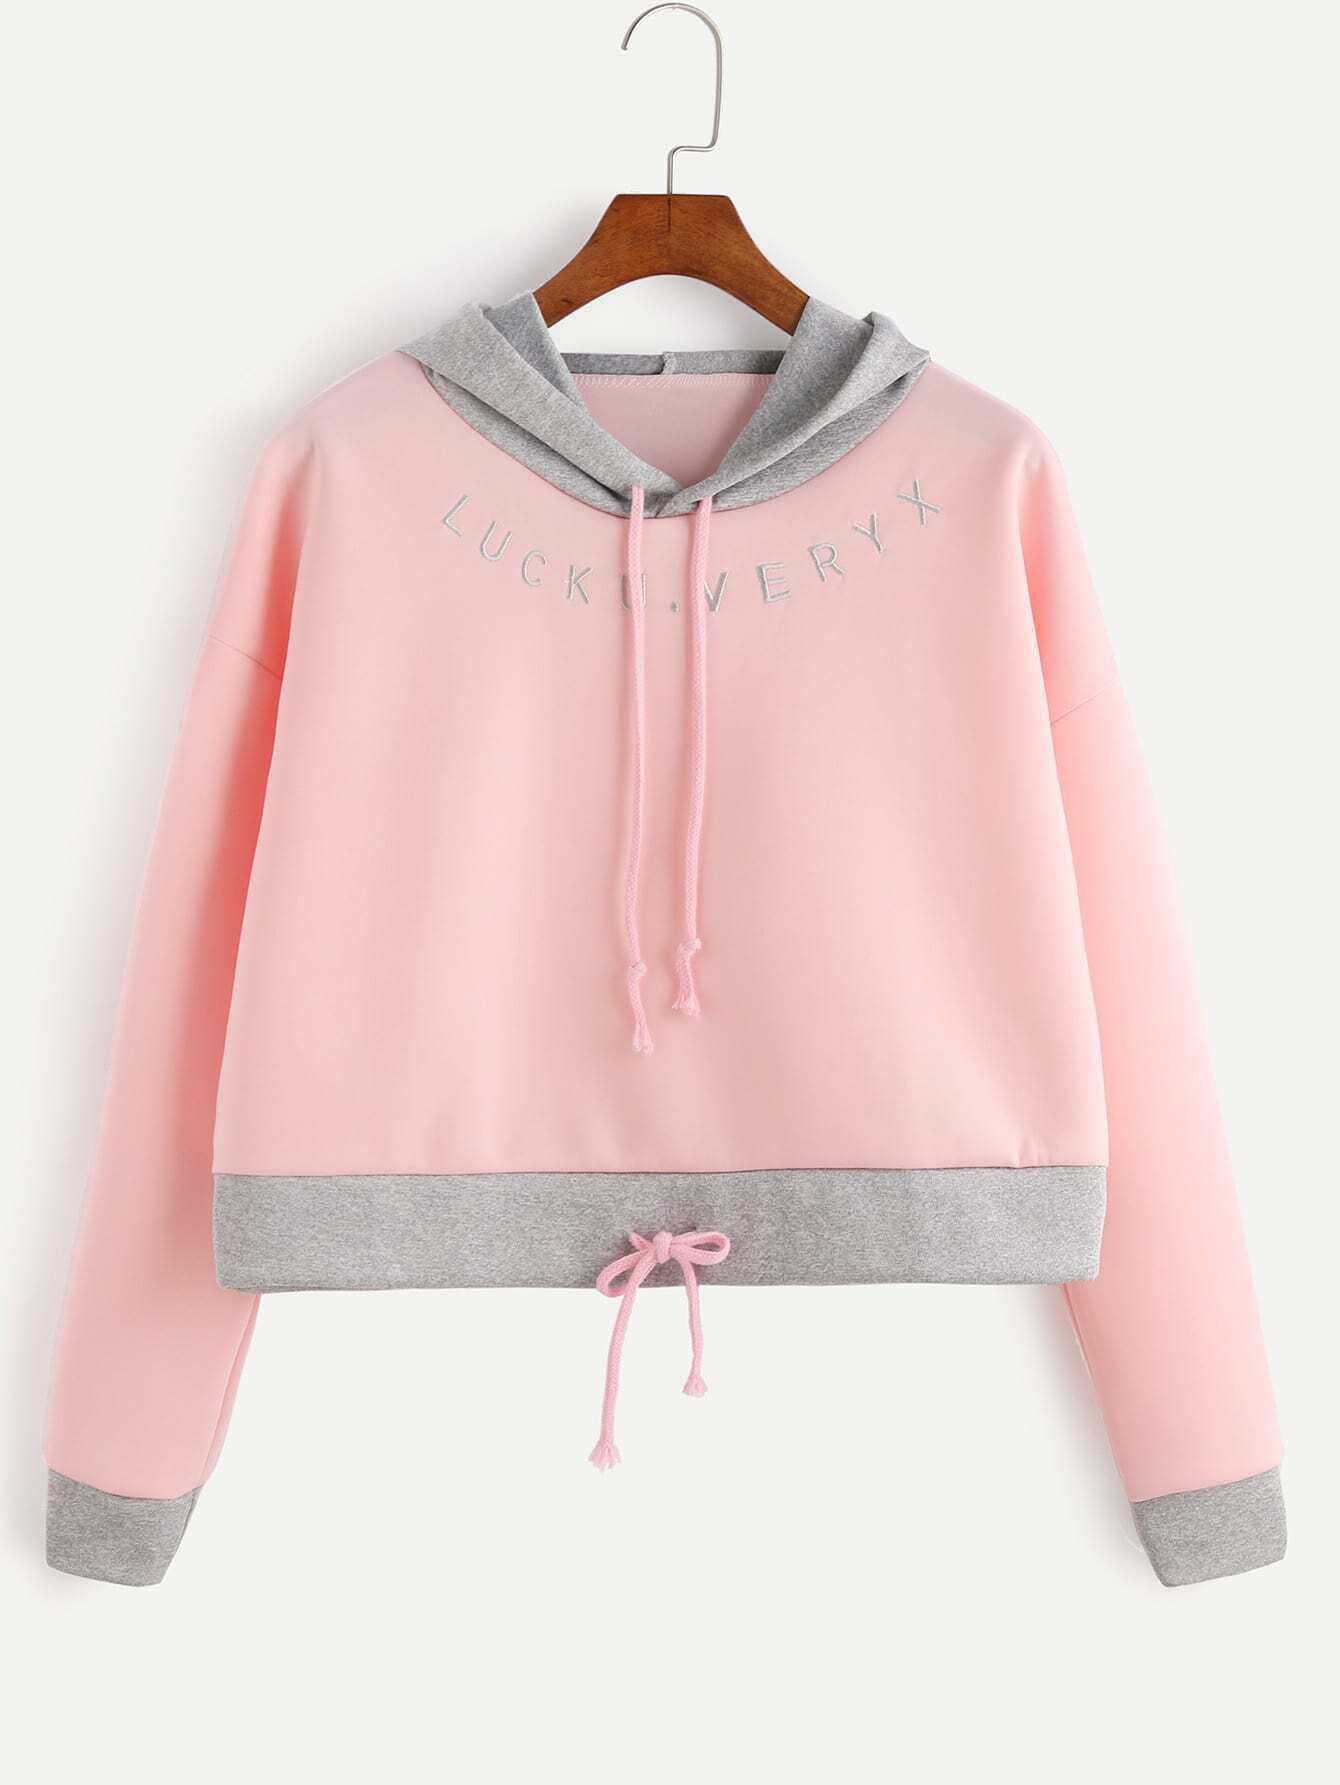 Pink Contrast Trim Letter Embroidery Drawstring Hooded Sweatshirt RSWE161014105